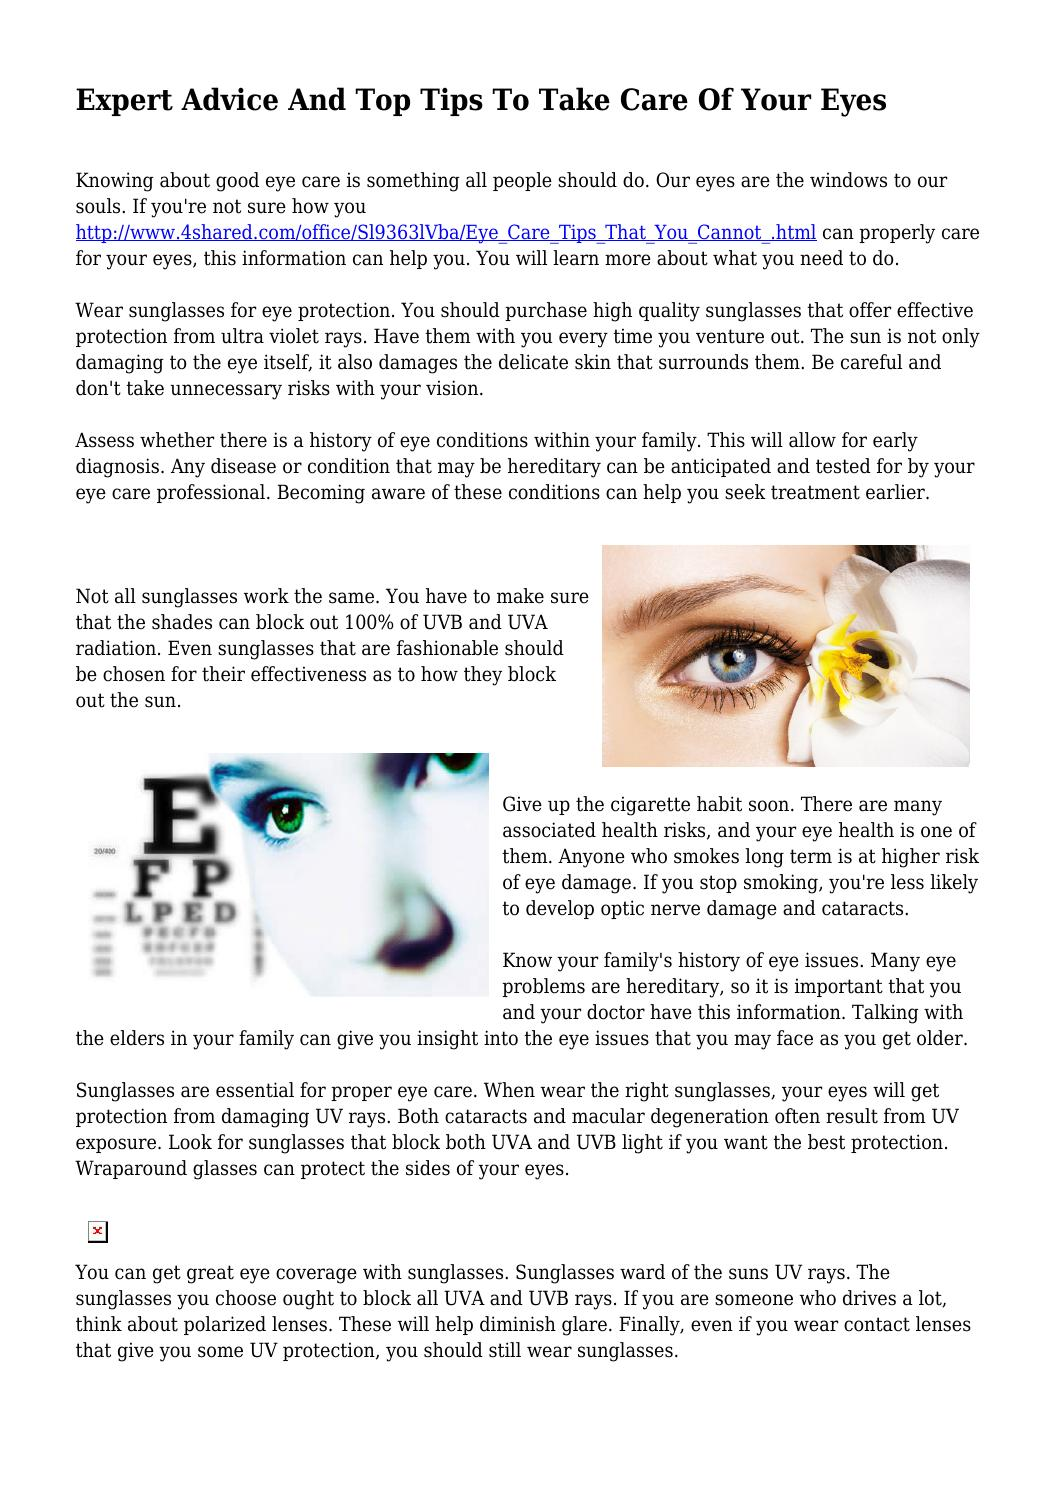 f4ceec73a64 Expert Advice And Top Tips To Take Care Of Your Eyes by heavygimmick381 -  issuu